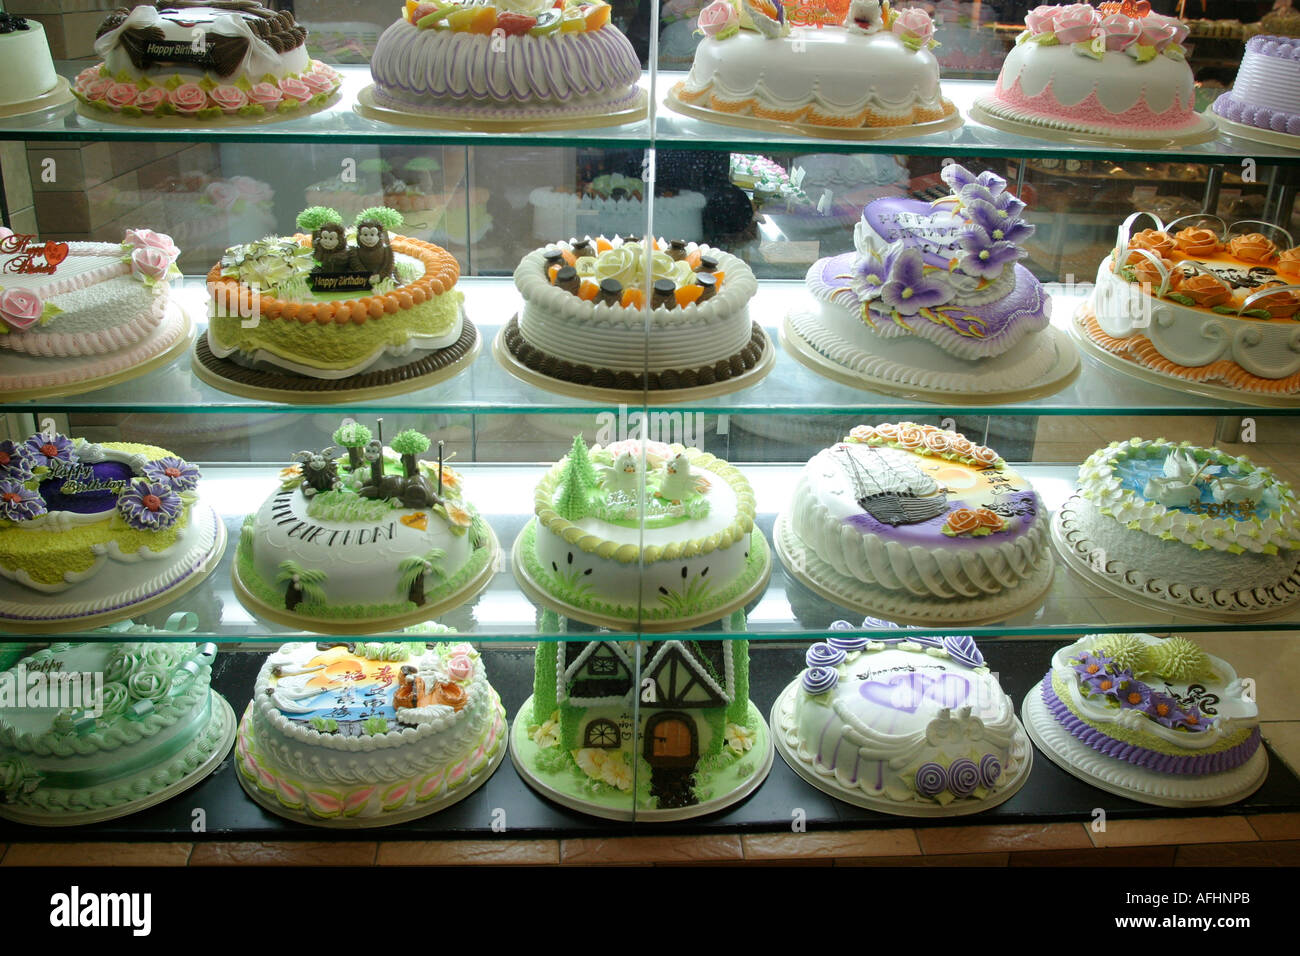 Best Birthday Cake Shop In Hyderabad